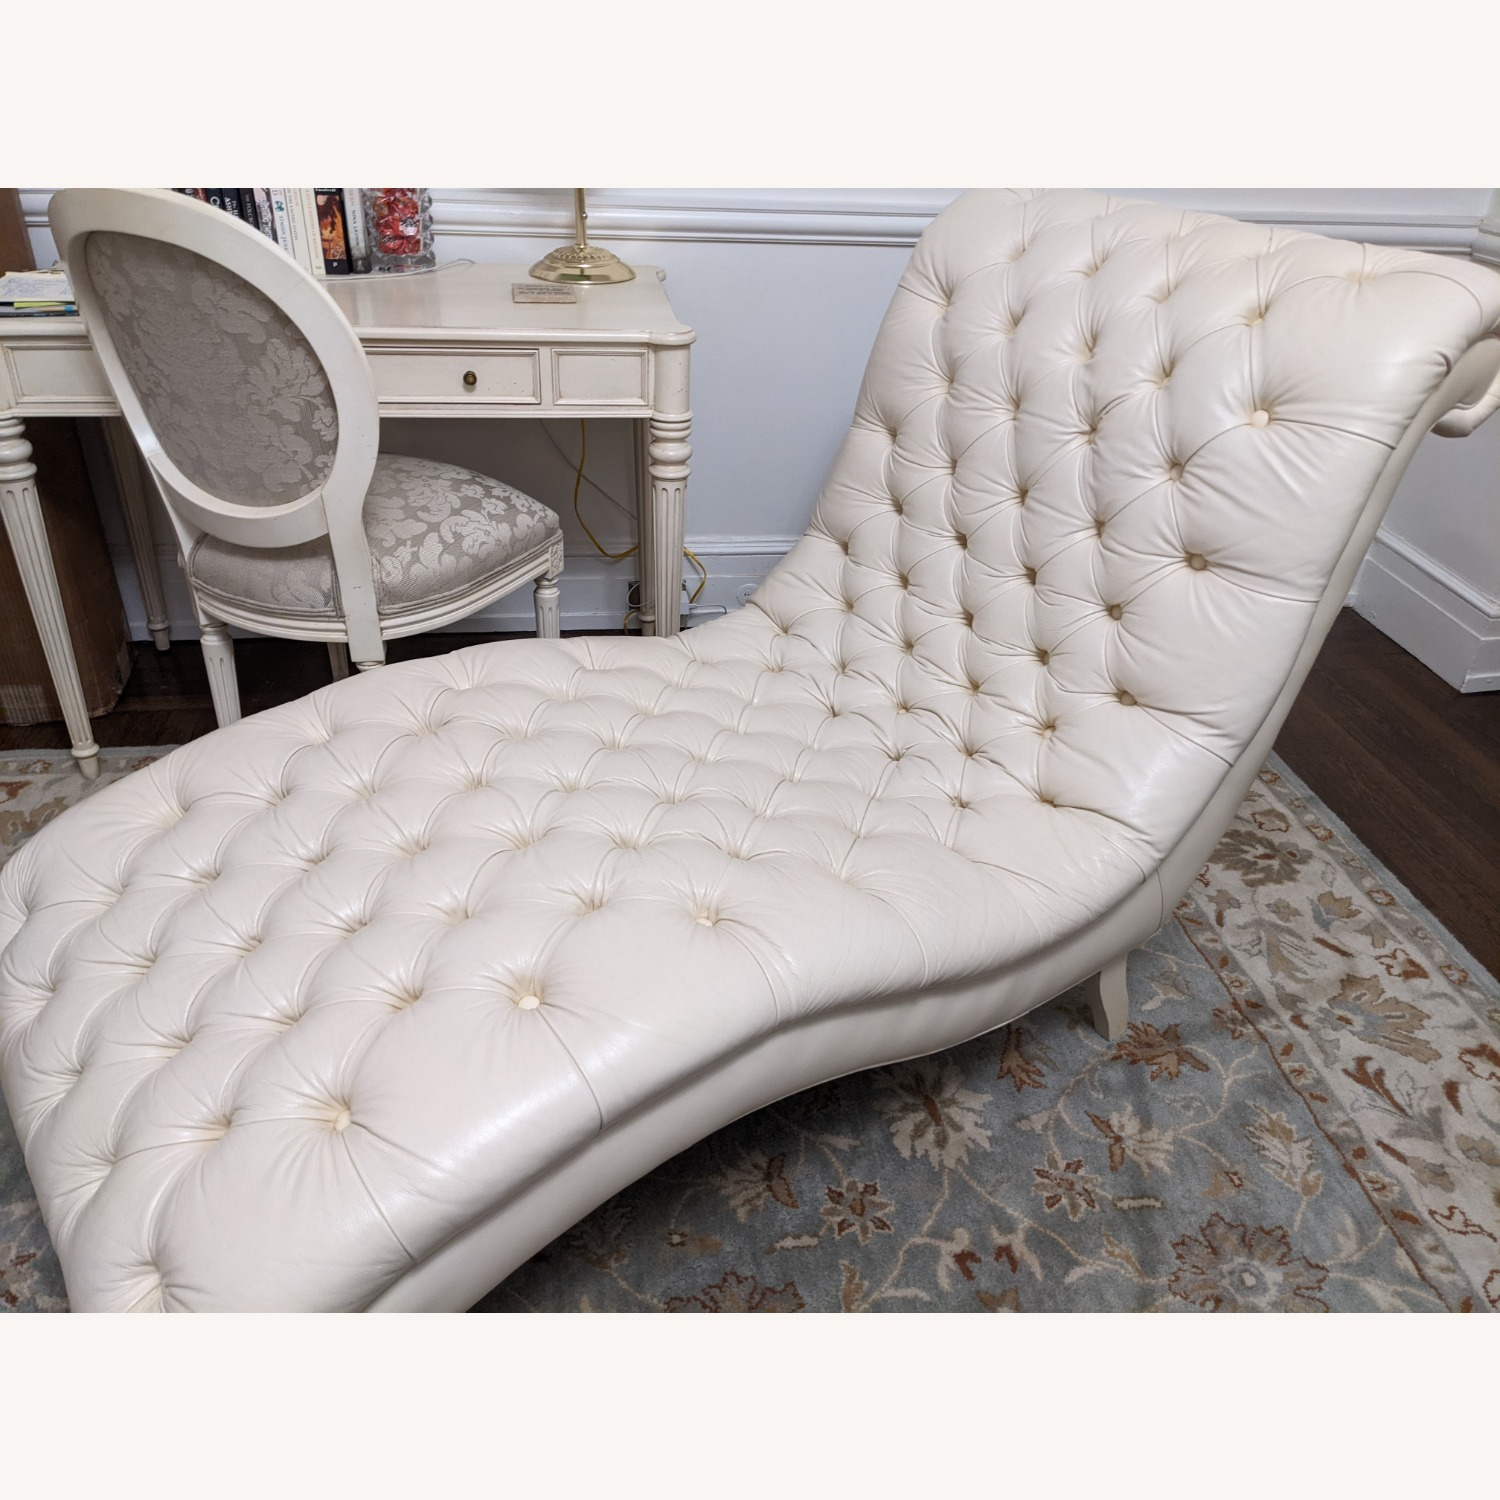 Ethan Allen Leather Chaise Long - image-8